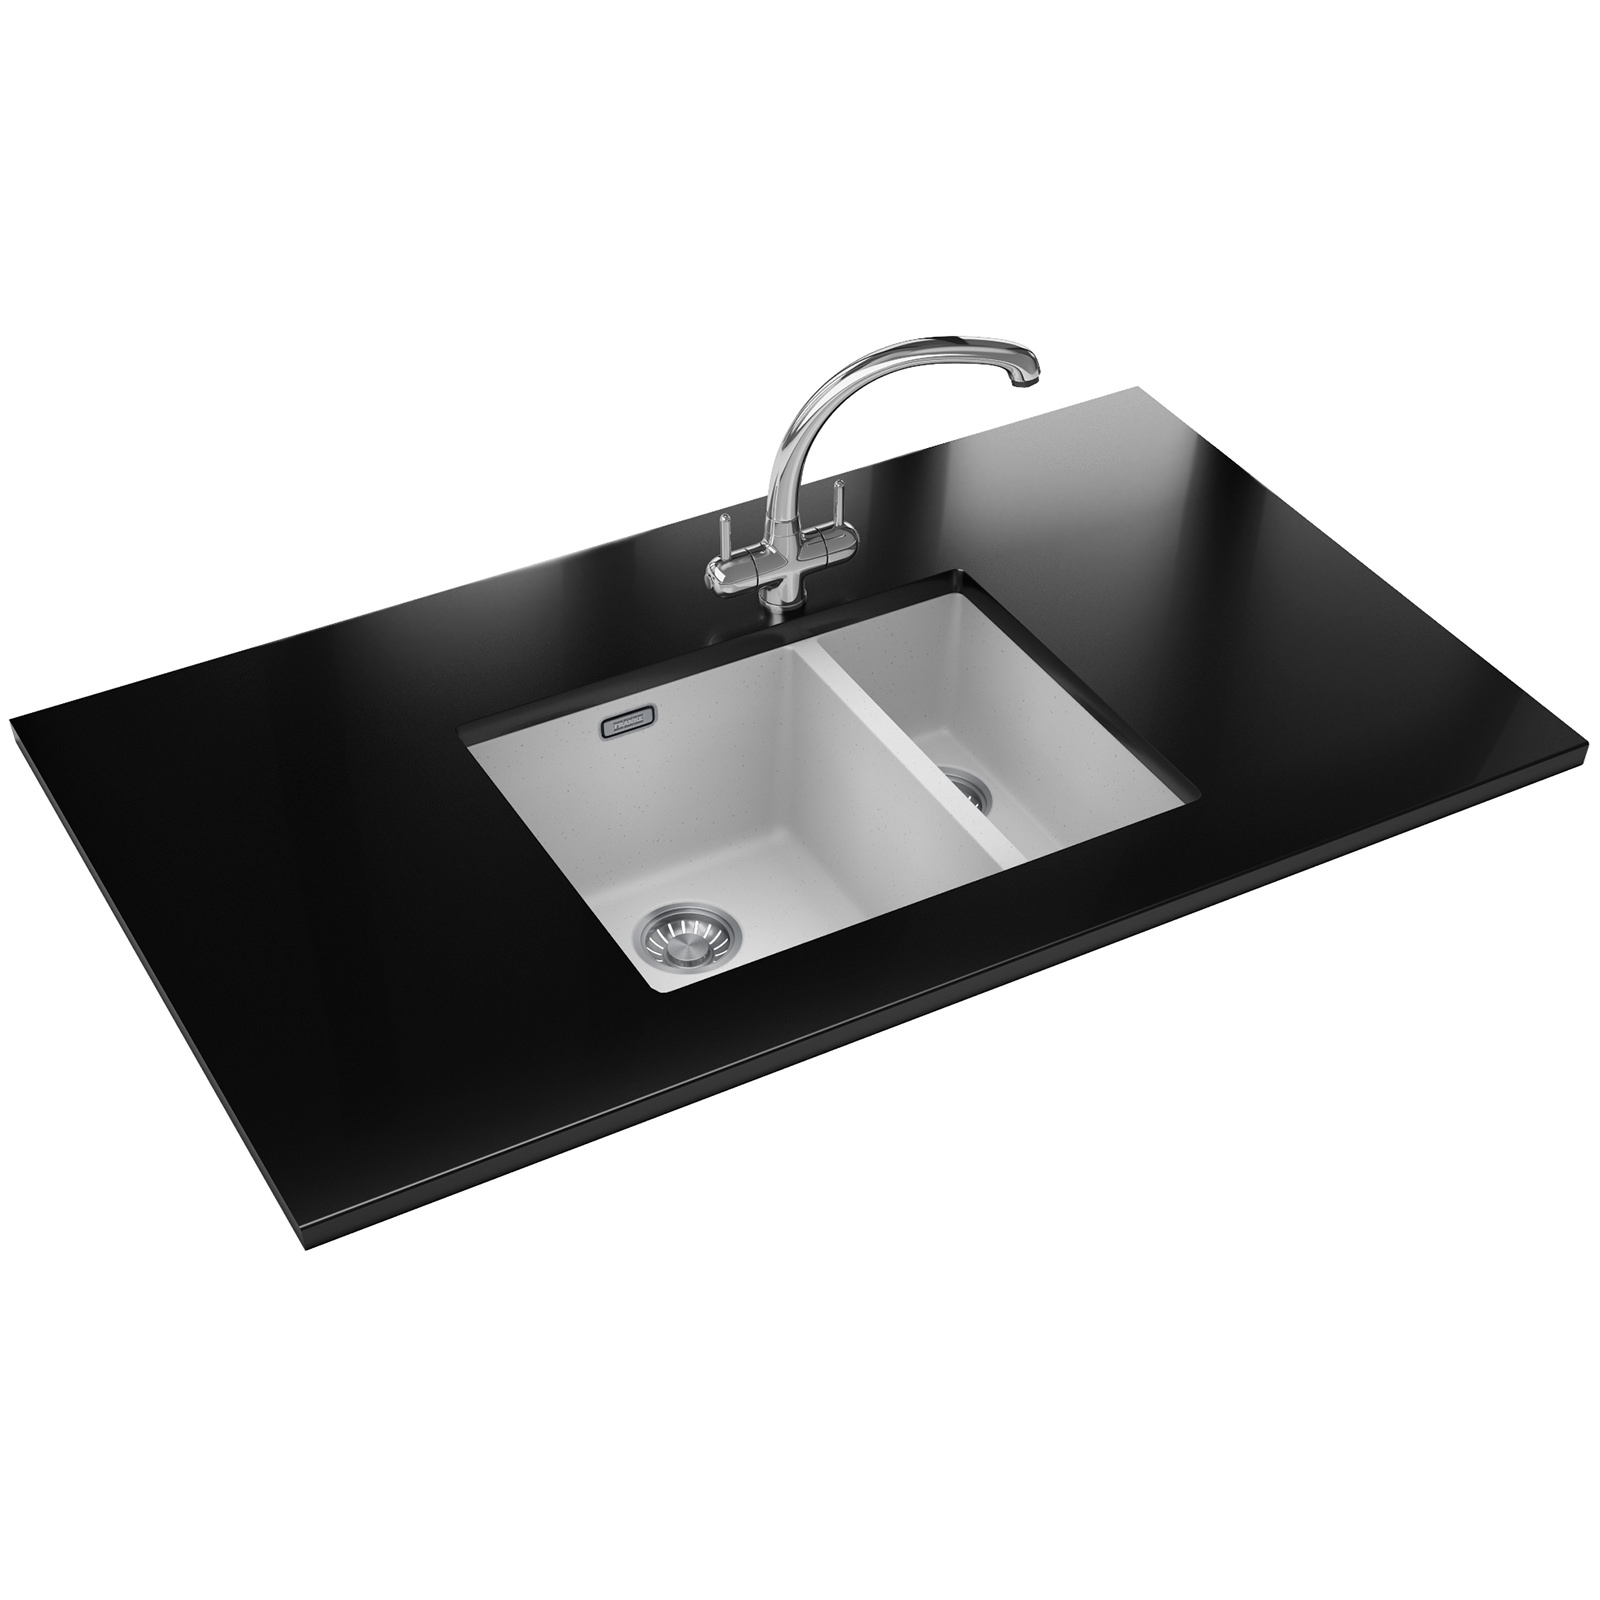 Franke White Composite Sink : Franke Sirius SID 160 Tectonite 1.5 Bowl White Undermount Sink